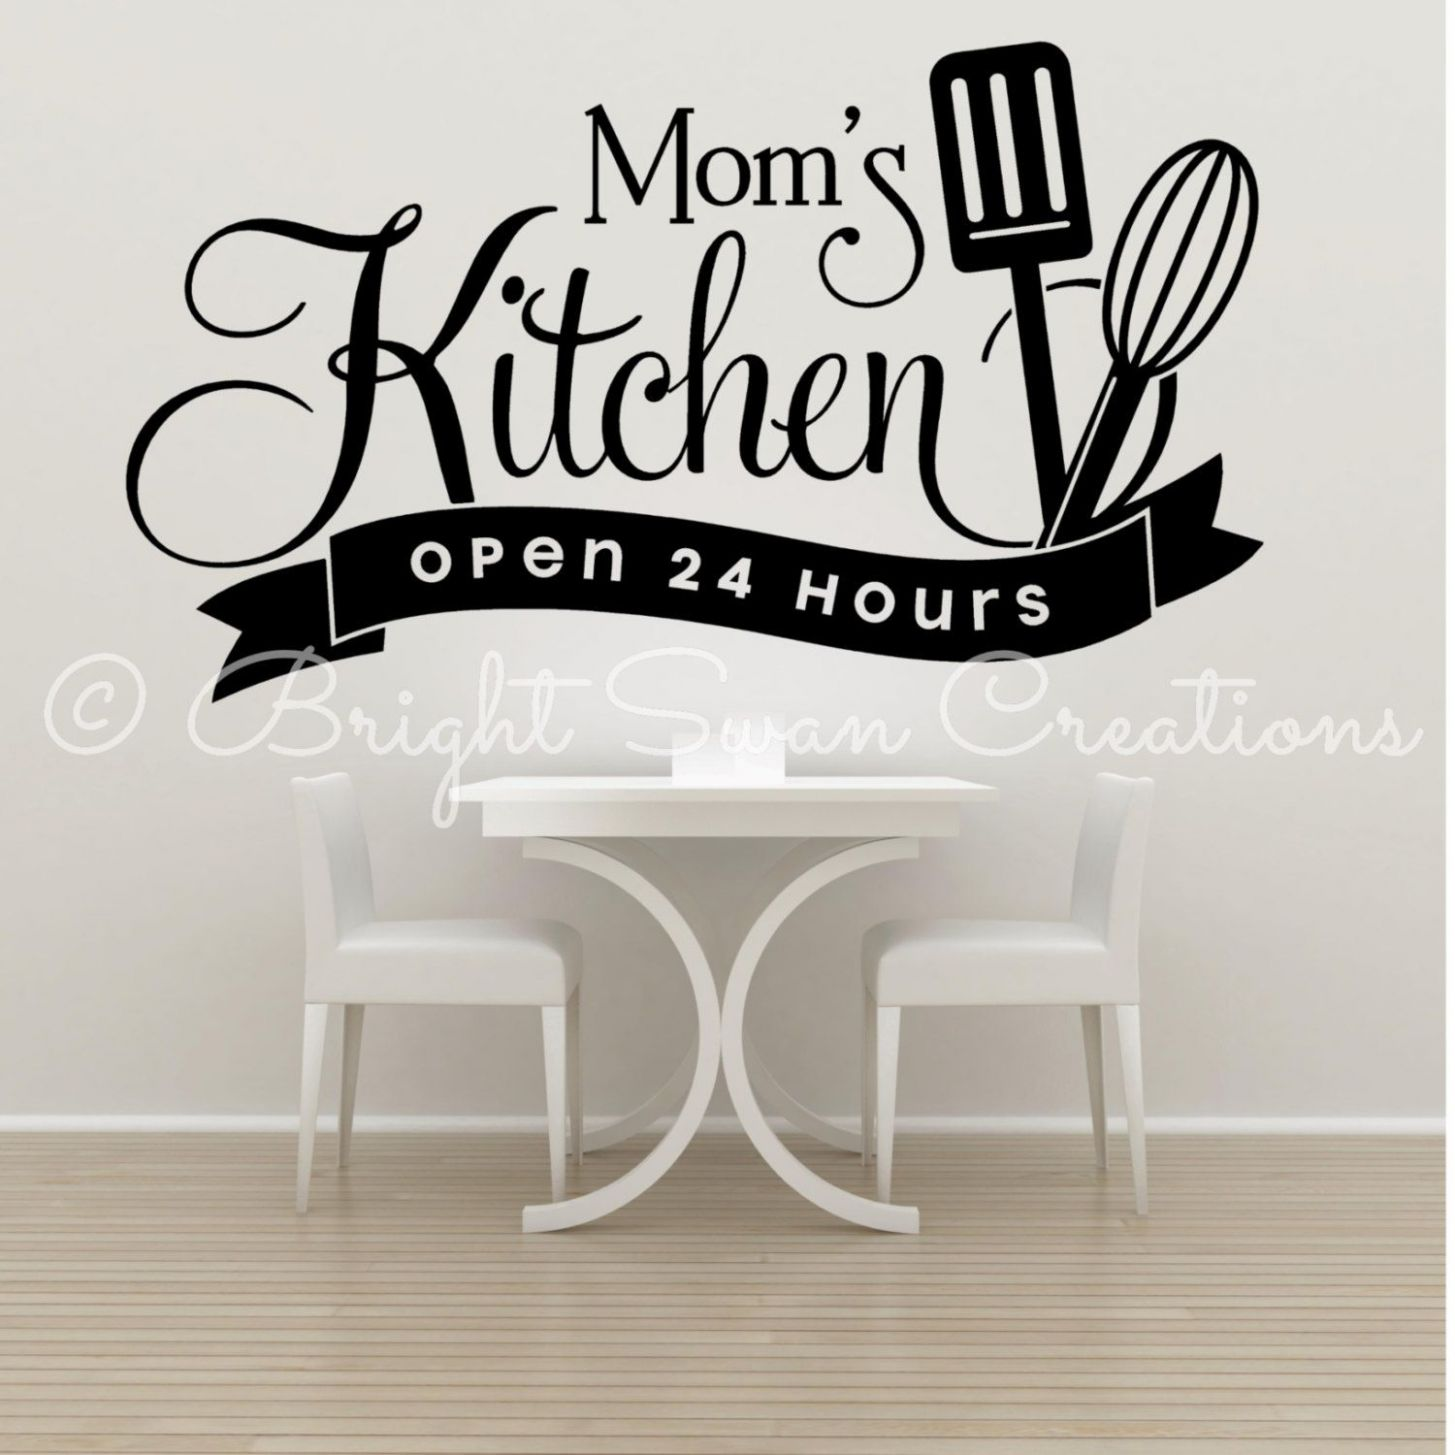 Moms kitchen open 12 hours vinyl decal, kitchen wall decor, love ..